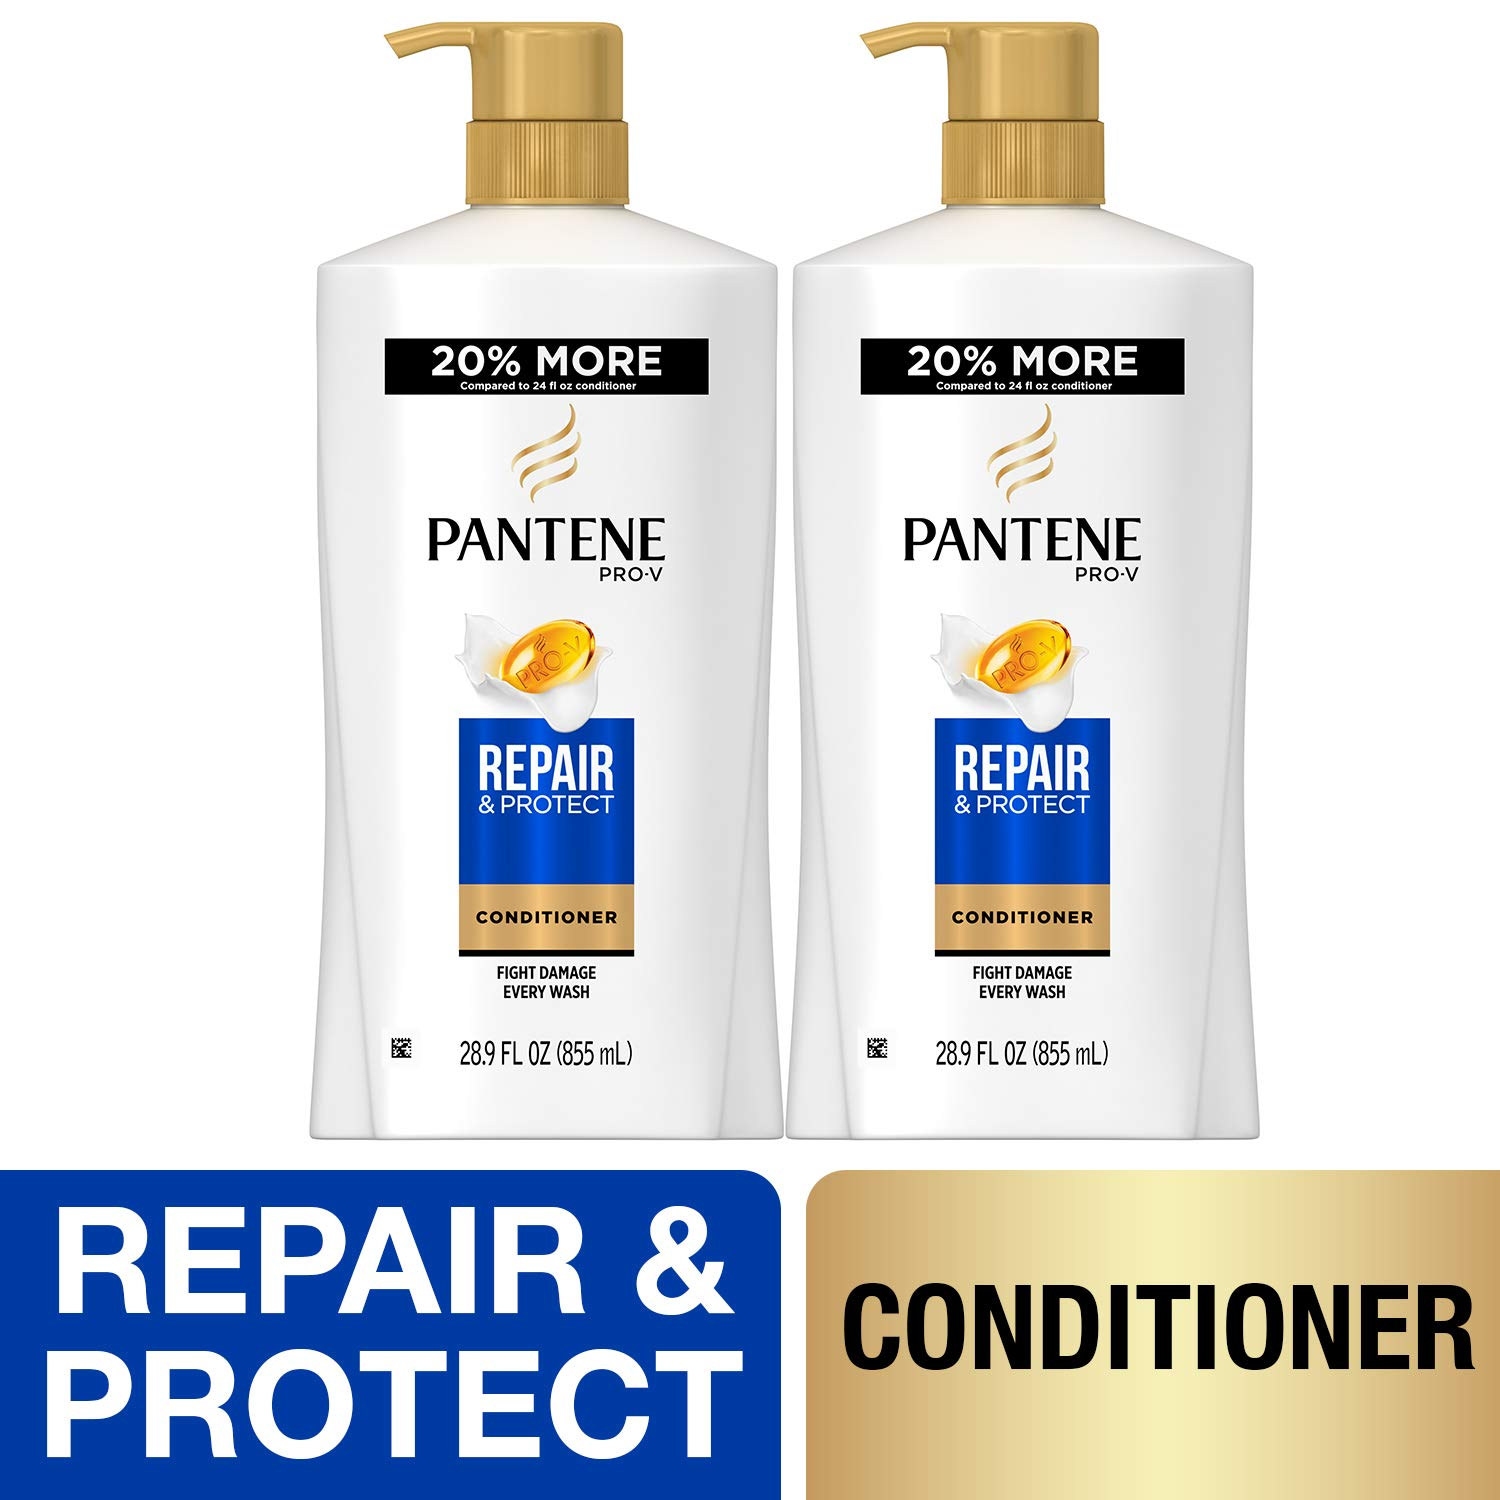 Pantene, Sulfate Free Conditioner, Pro-V Repair and Protect for Damaged Hair, 28.9 fl oz, Twin Pack by Pantene